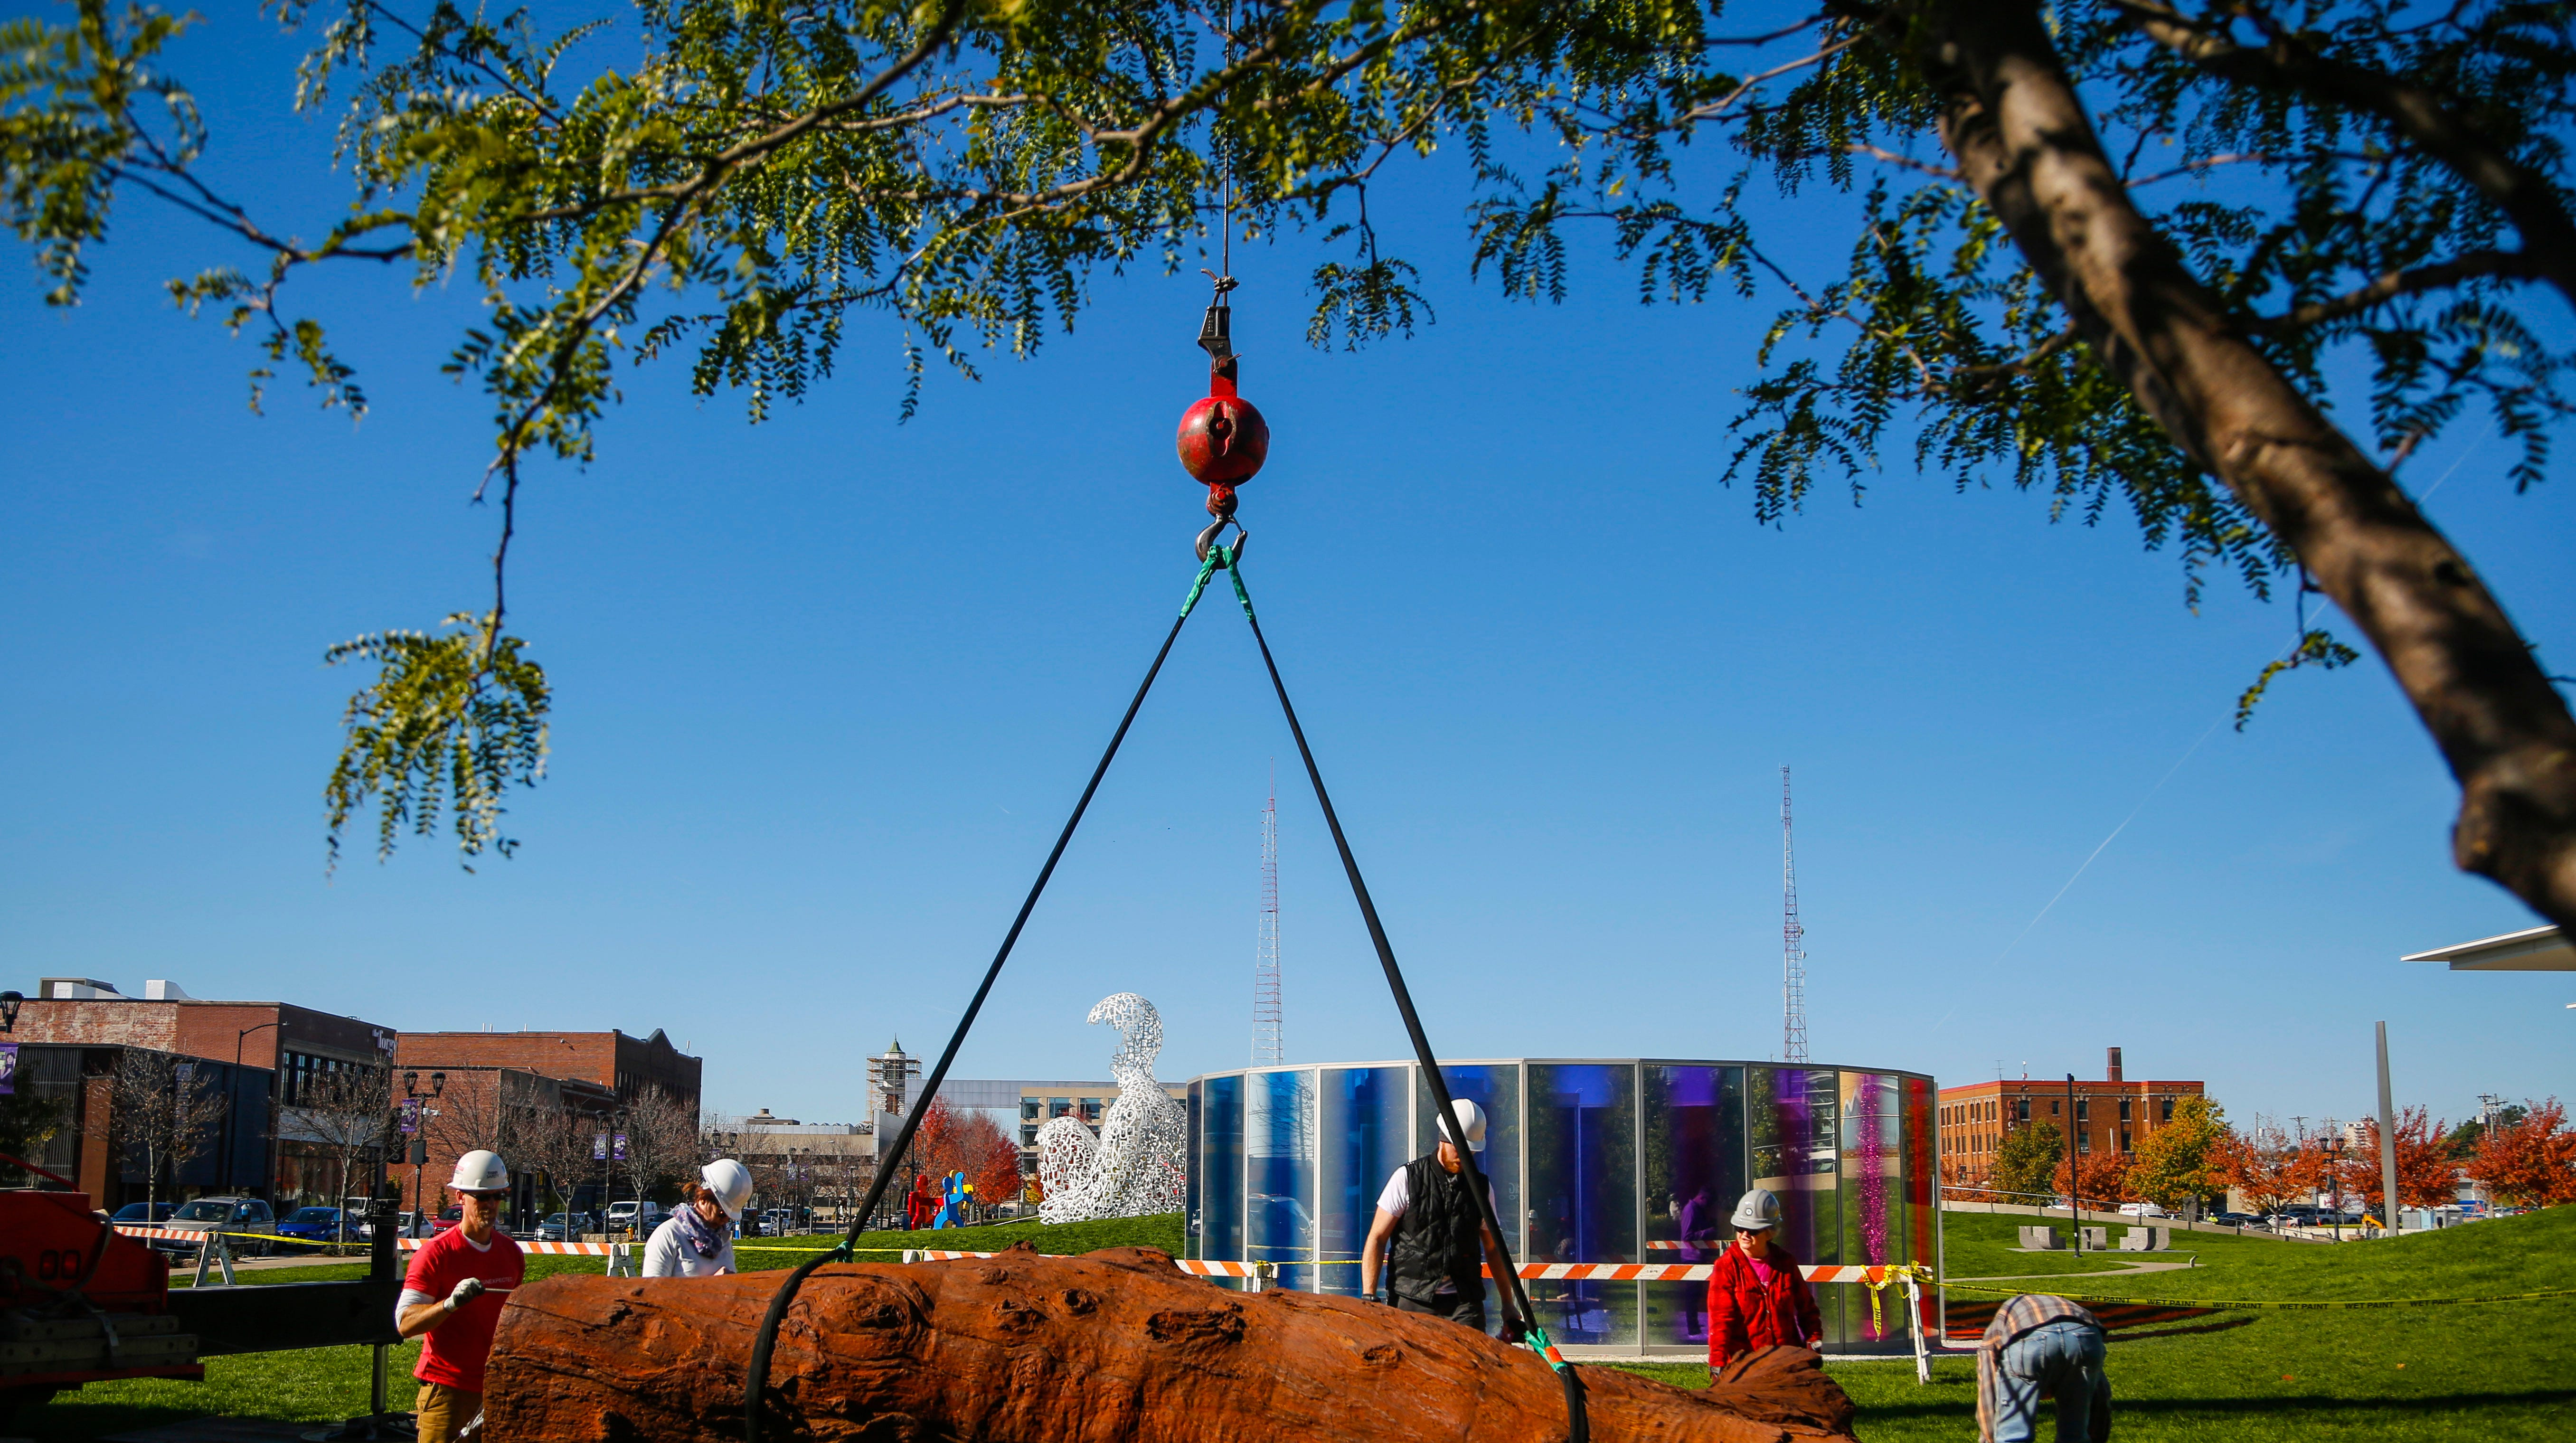 Photos: 'Iron Tree Trunk' is newest addition to Pappajohn Sculpture Park